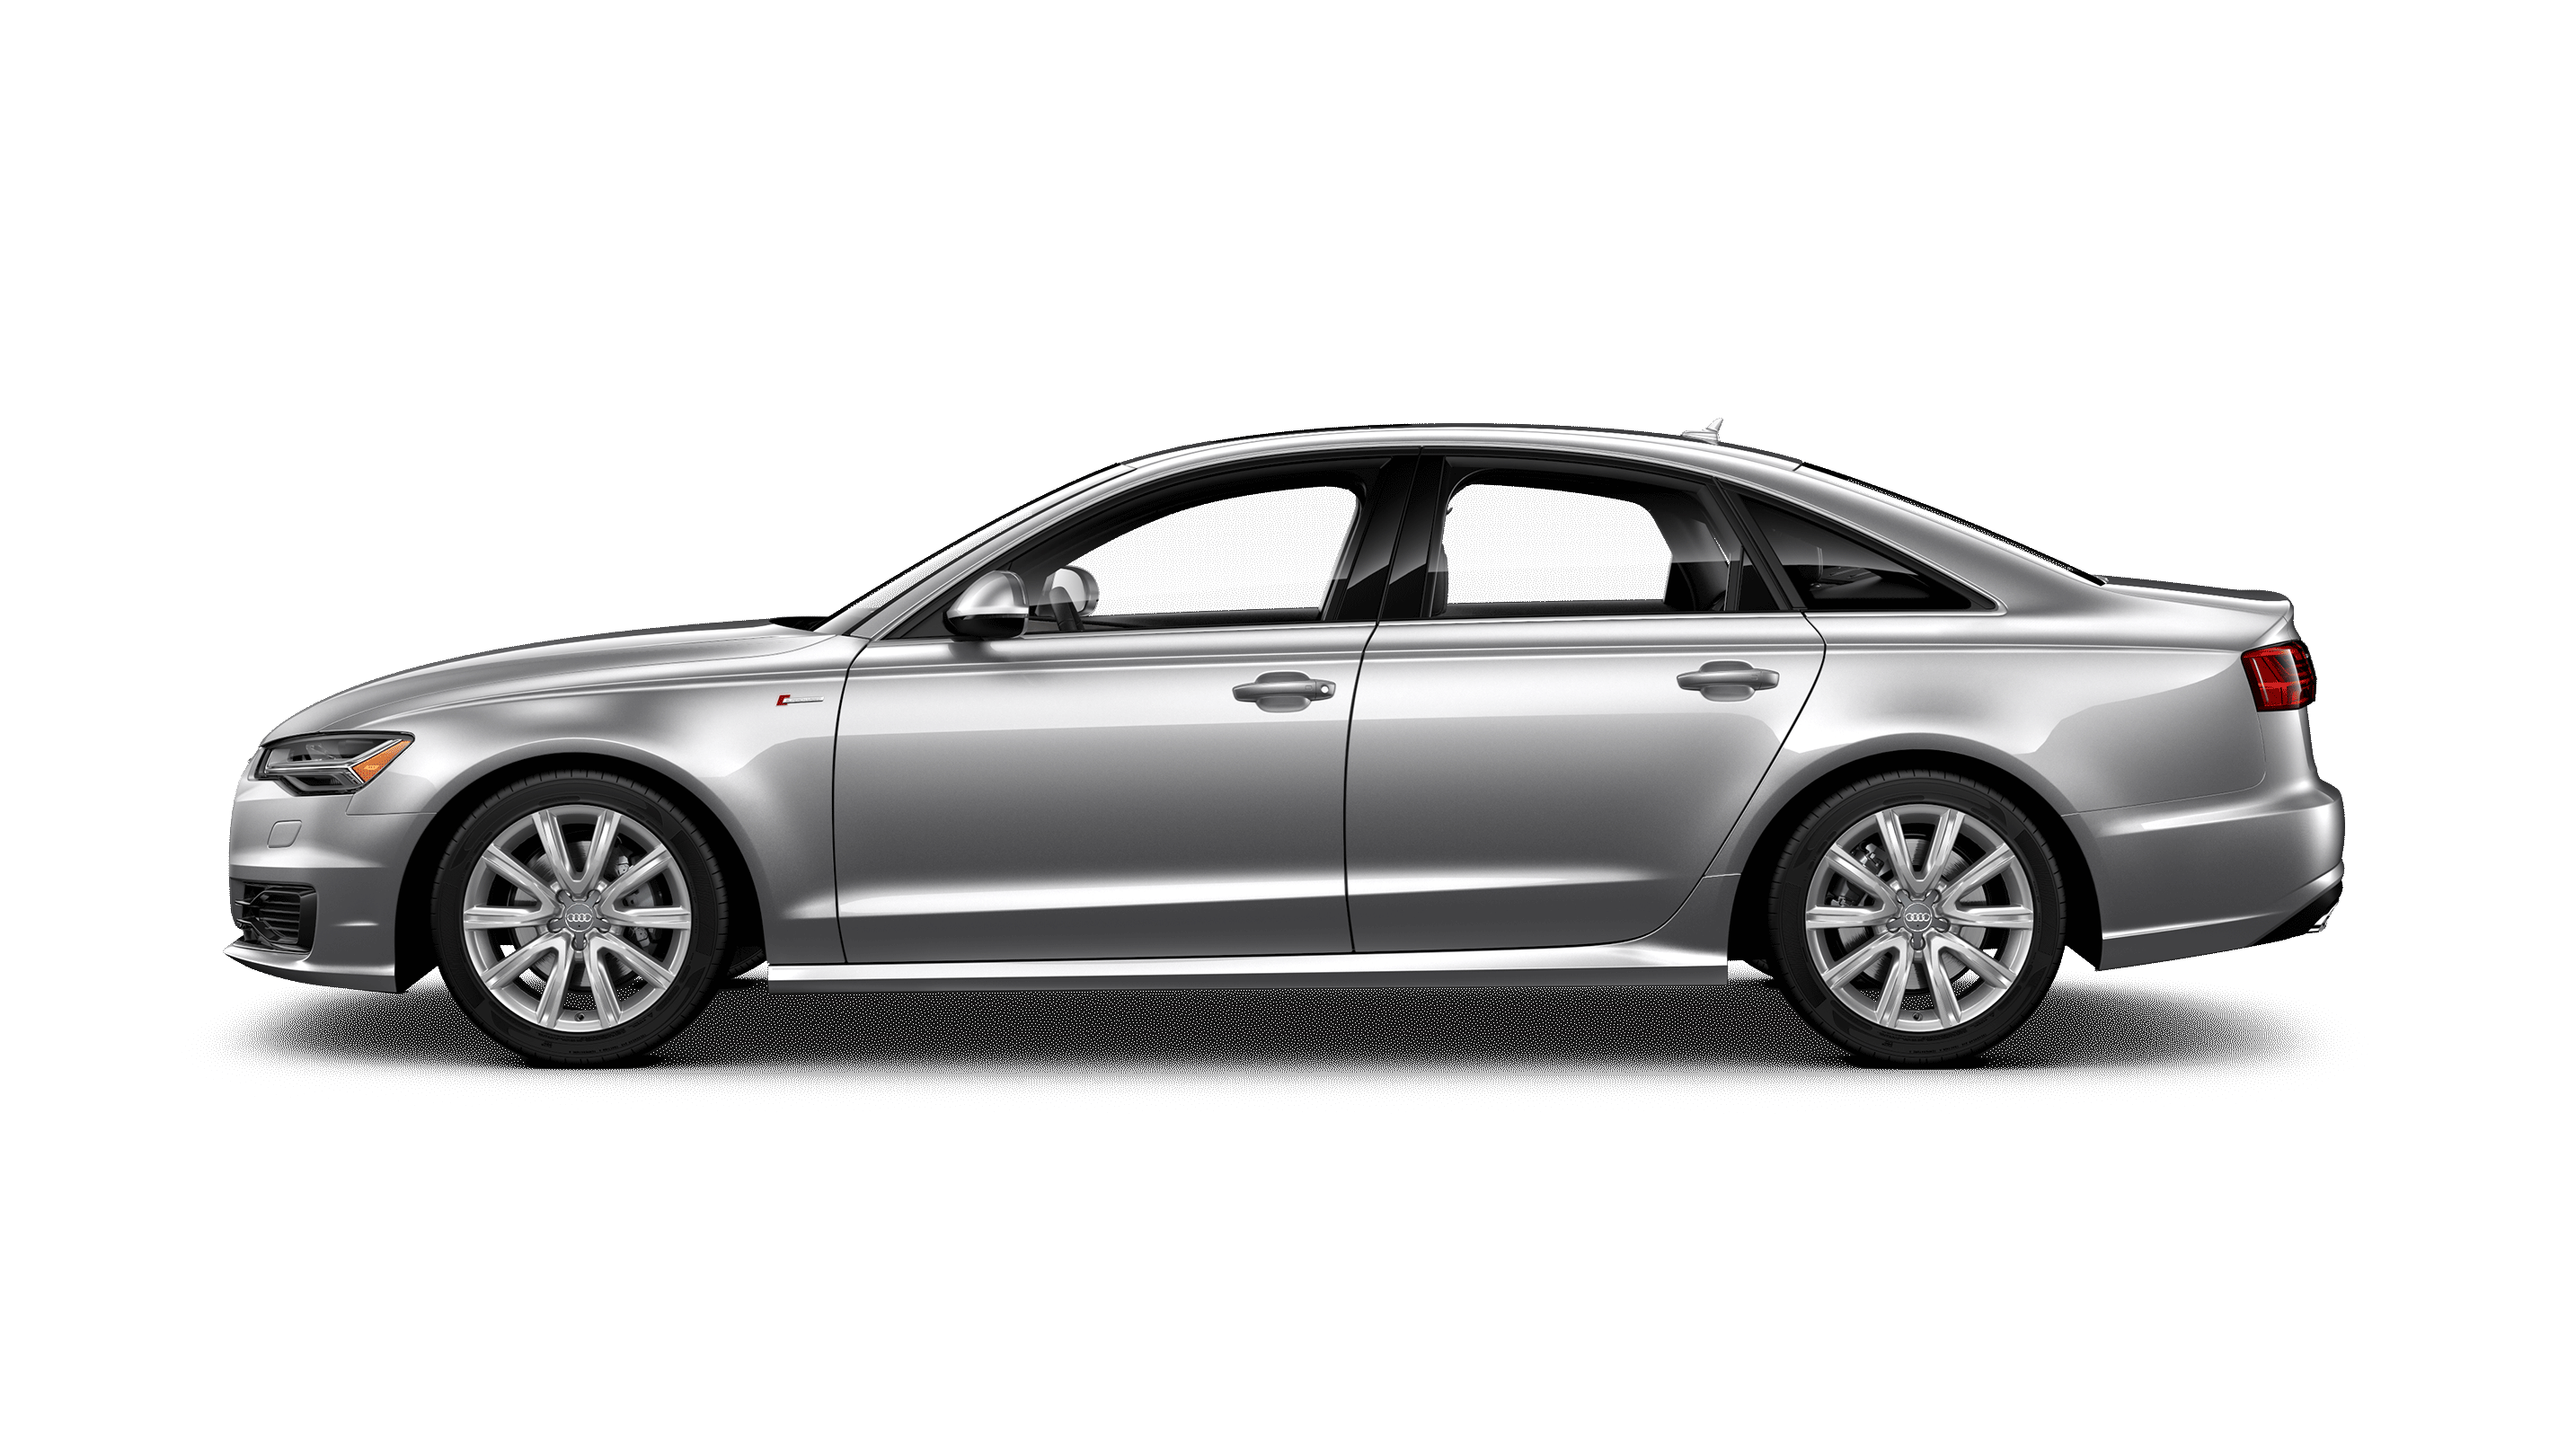 2016 Audi A8 L W12 Executive Sedan Price Amp Specs Audi Usa